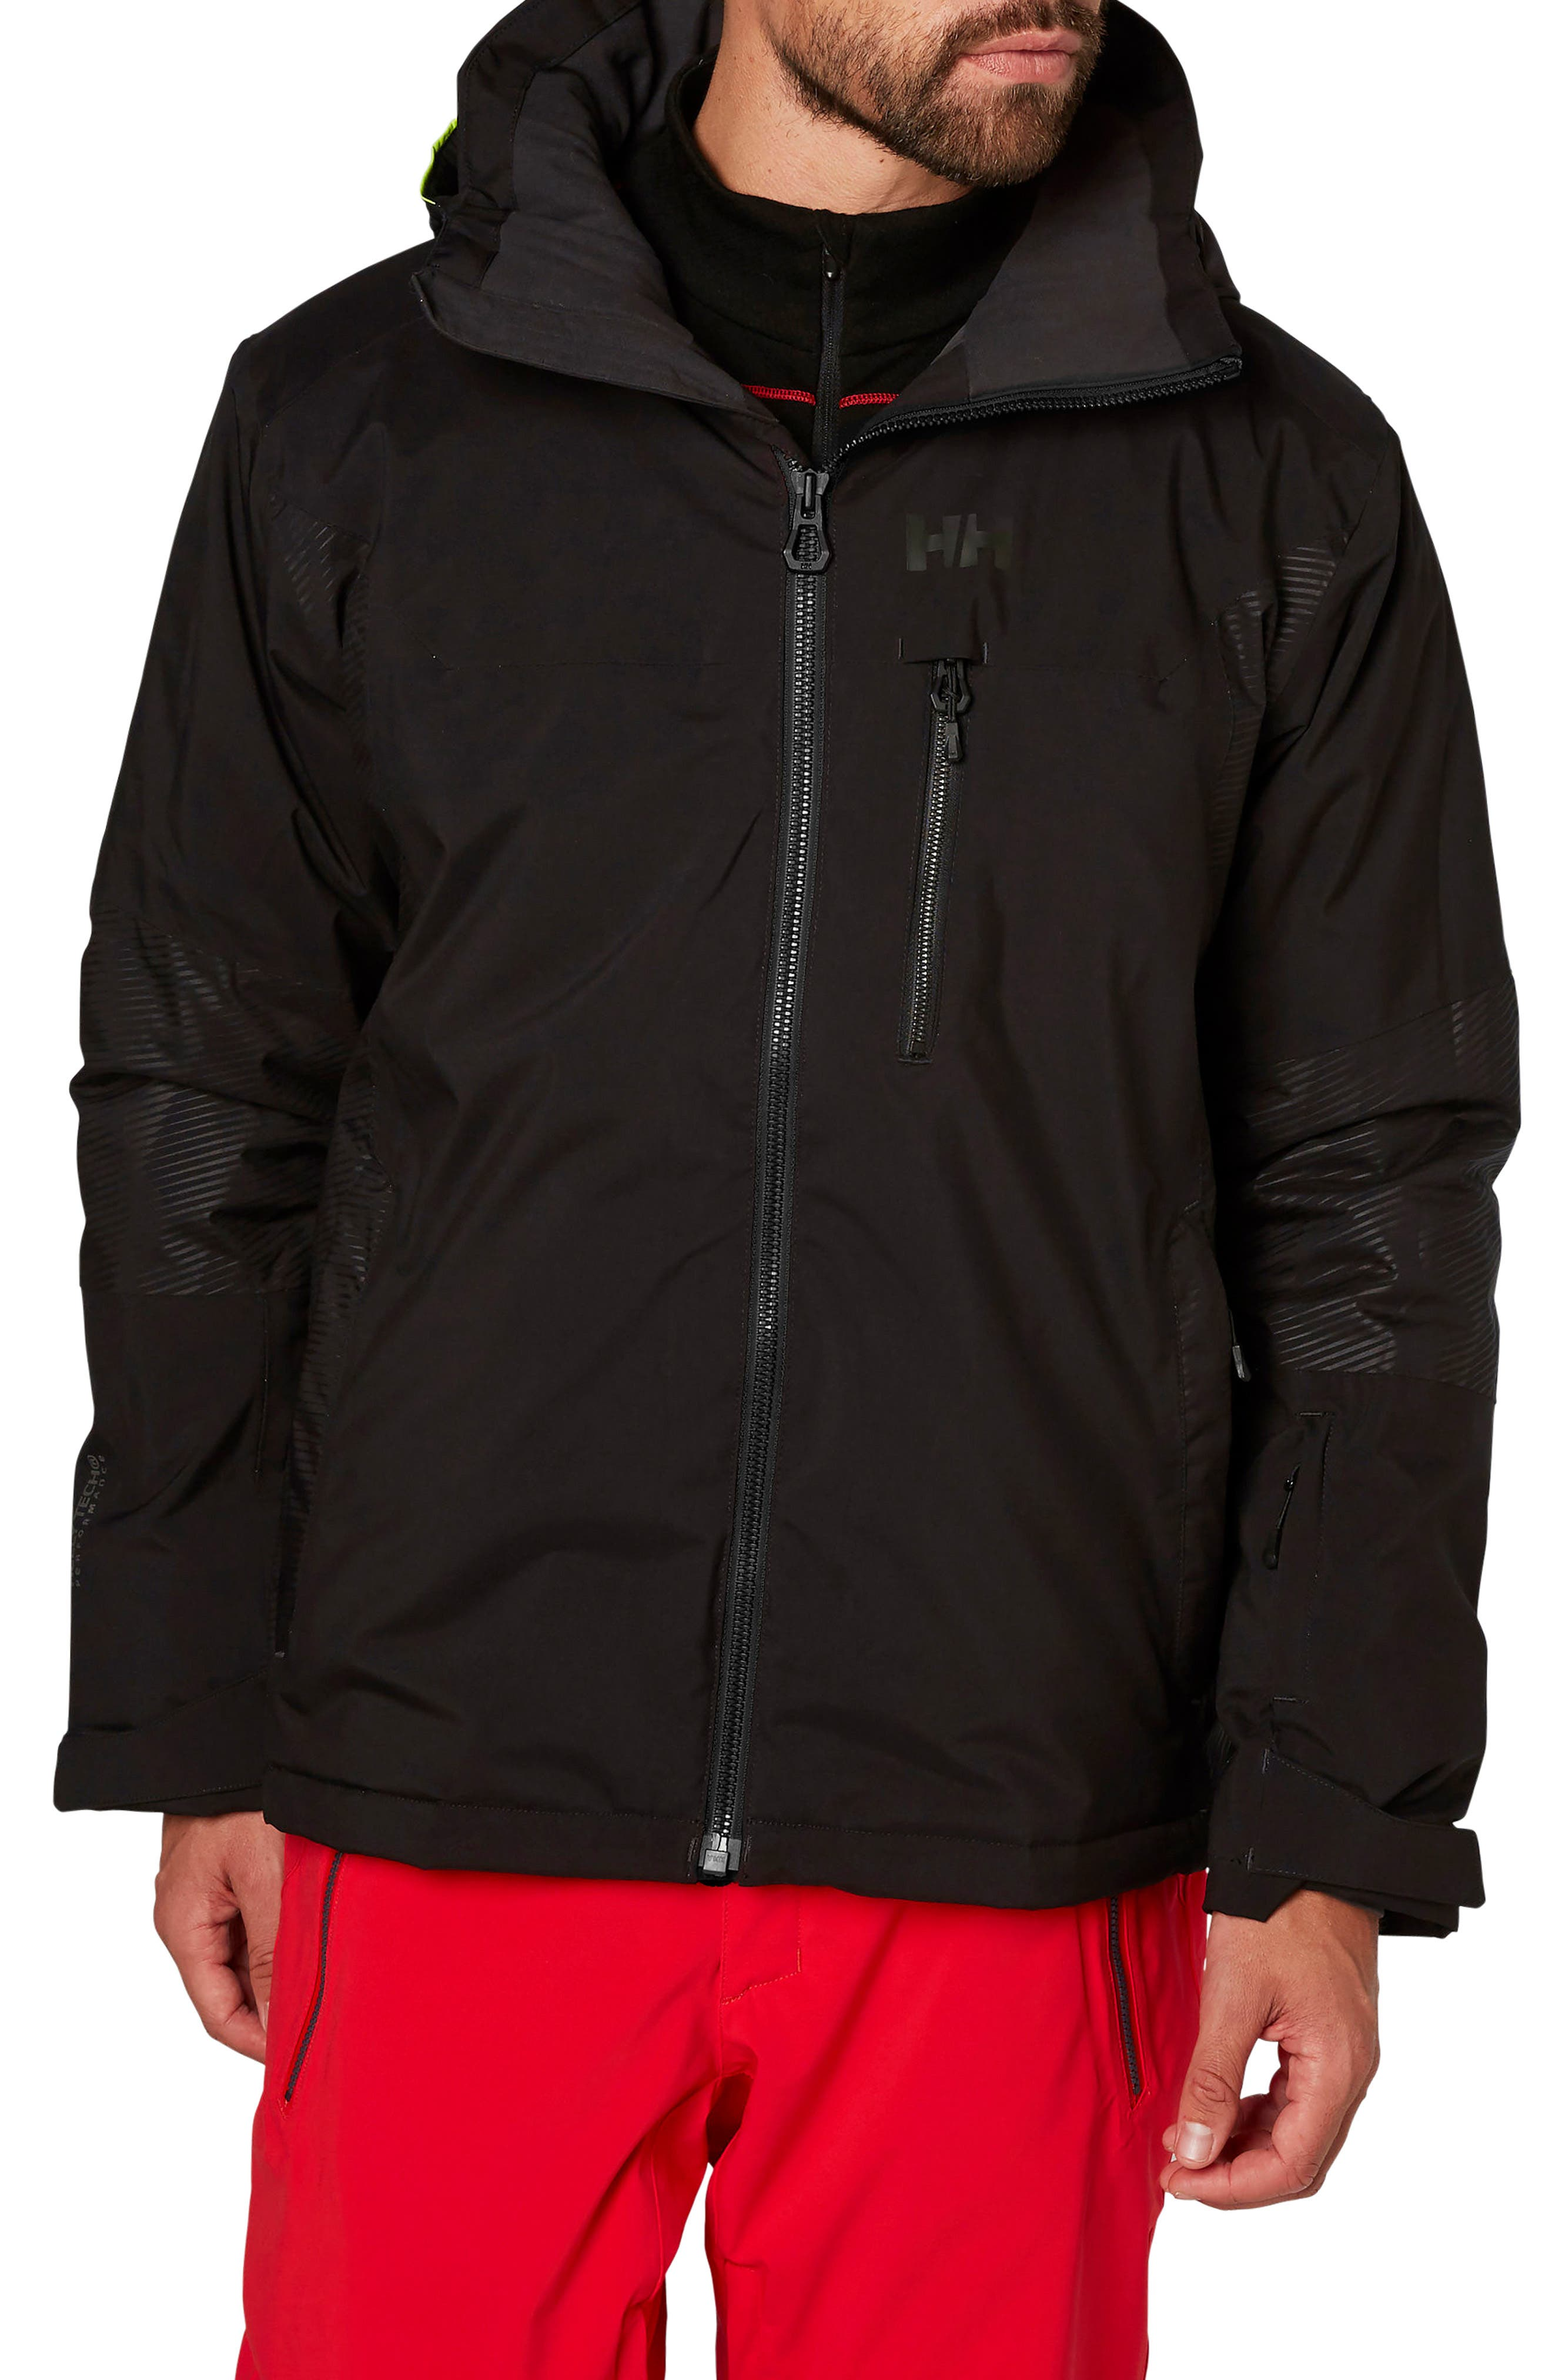 Main Image - Helly Hansen Double Diamond Waterproof Jacket